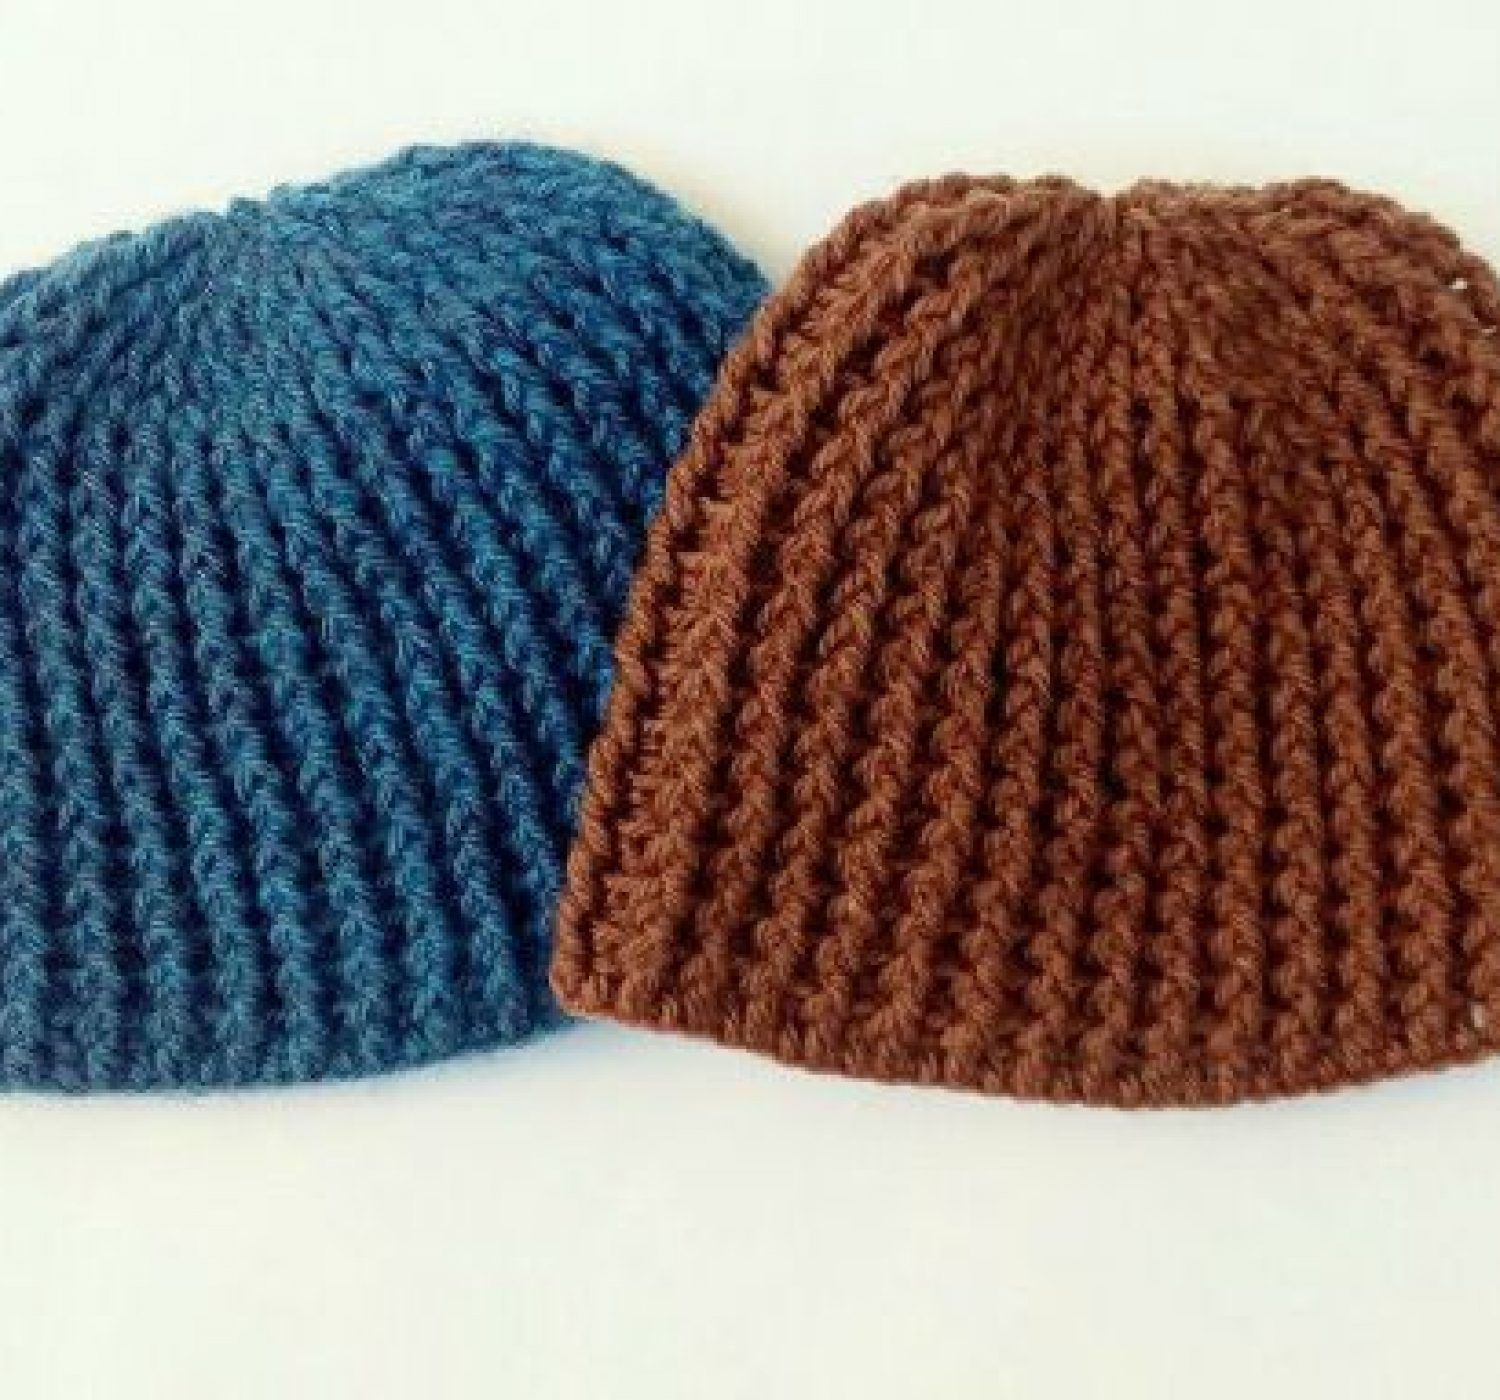 Crochet hat pattern free – Boys really like it!